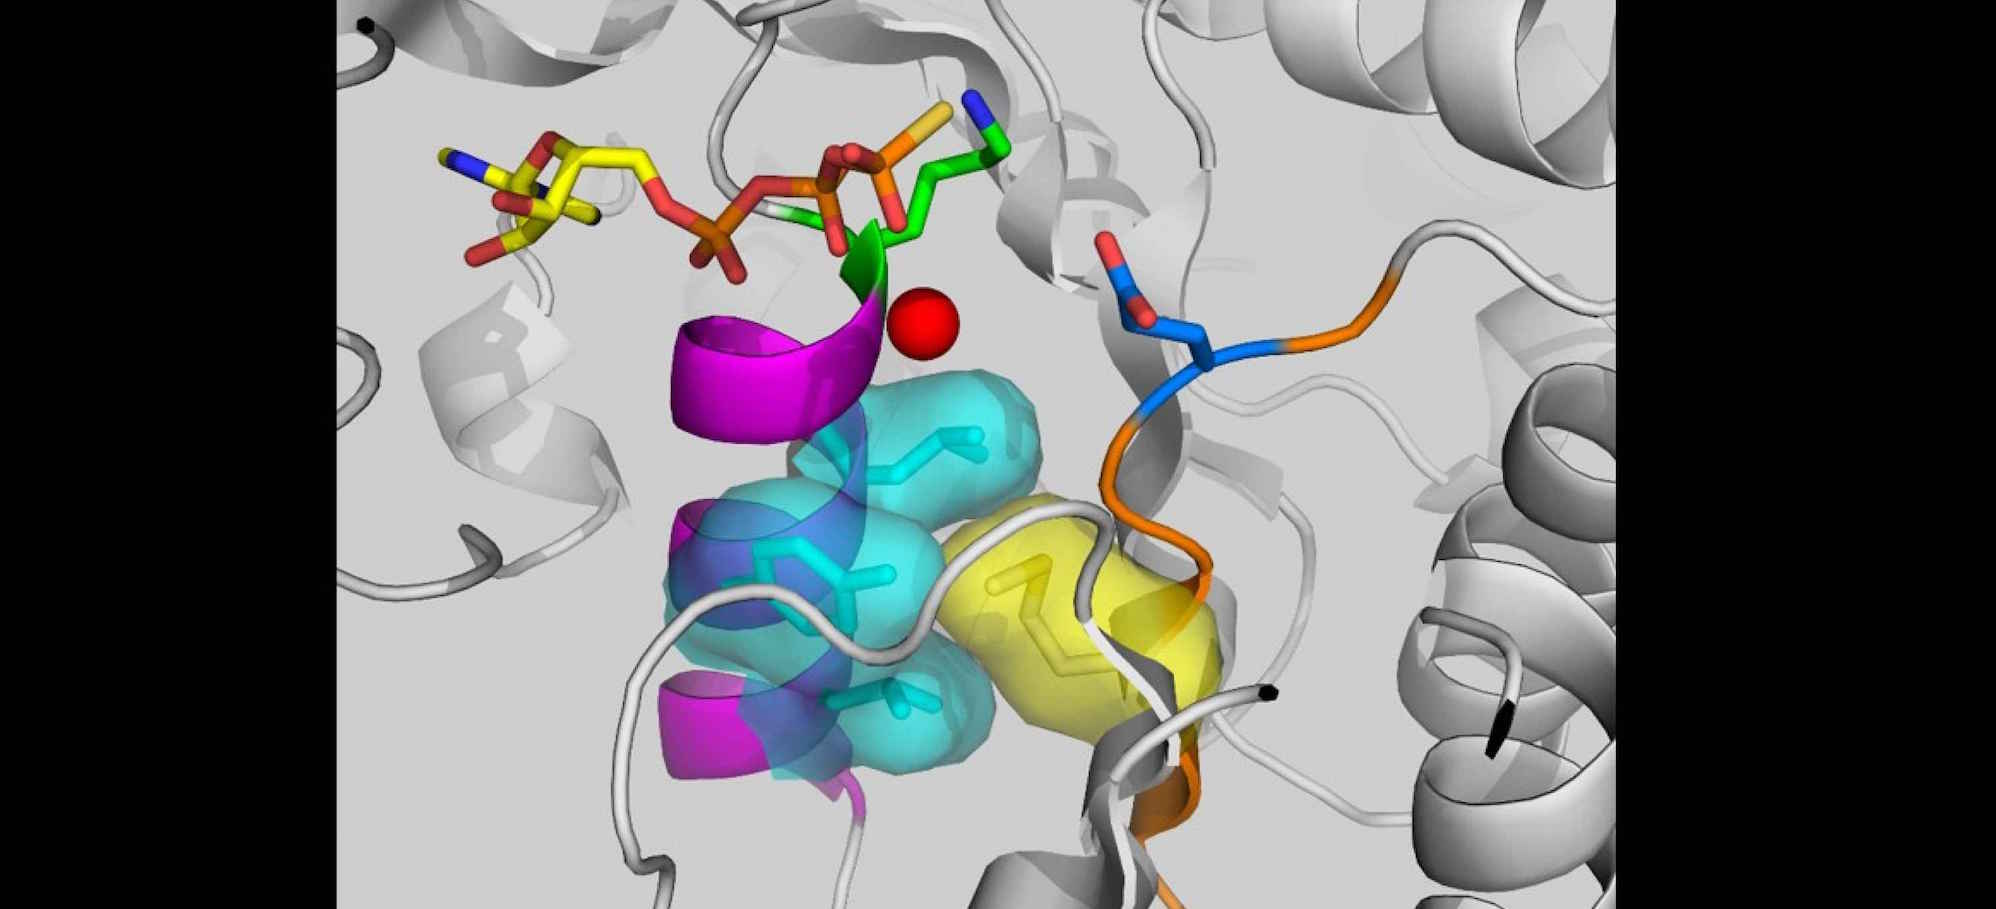 Enzyme may help bacteria become craftier and more dangerous